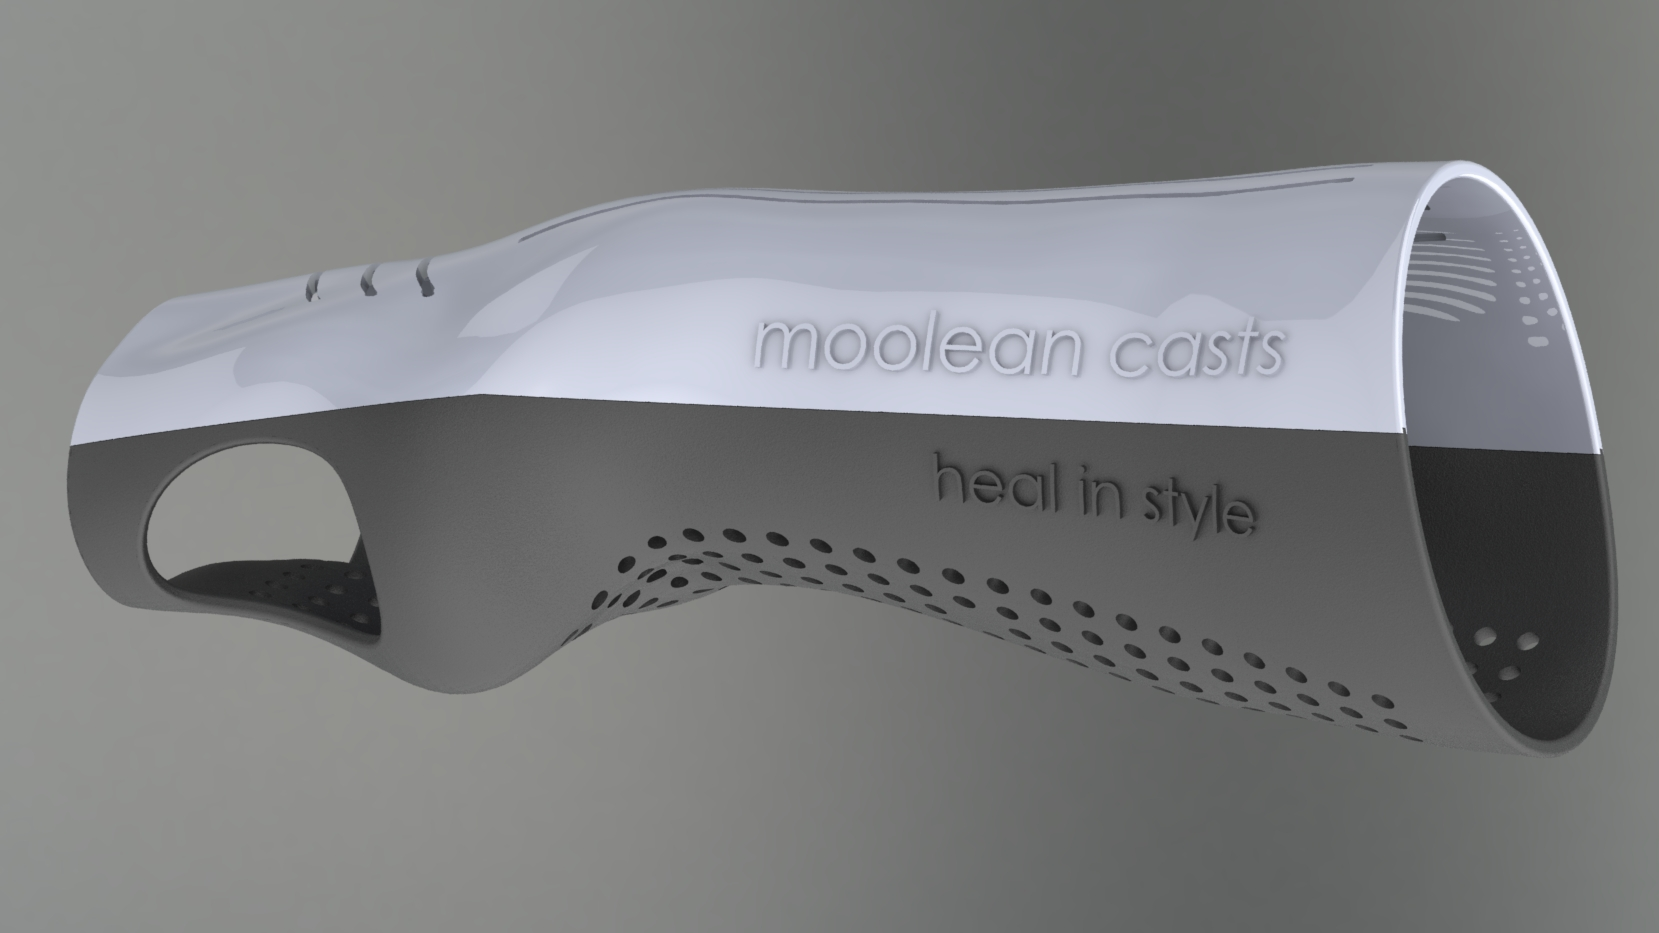 3D design of a wrist cast generated from a 3D scan of the wrist area.